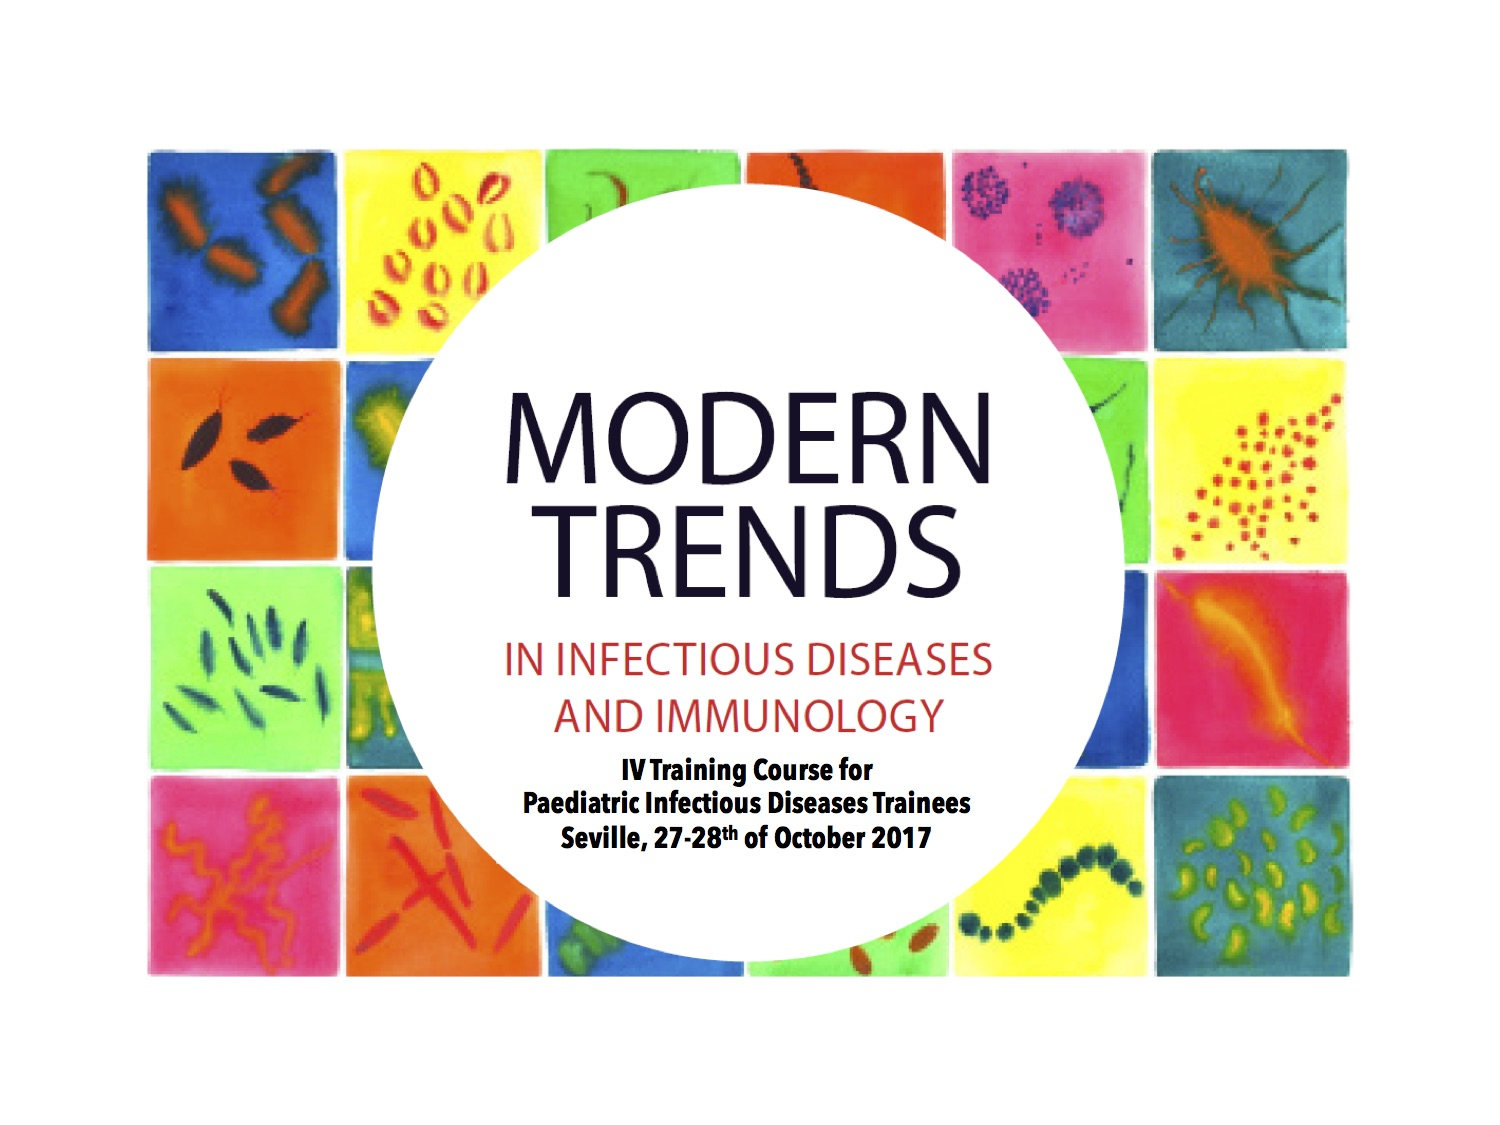 La 4ª Edición Modern Trends in Pediatric Infectious Diseases and Immunology se celebró los días 27-28 Octubre en Sevilla